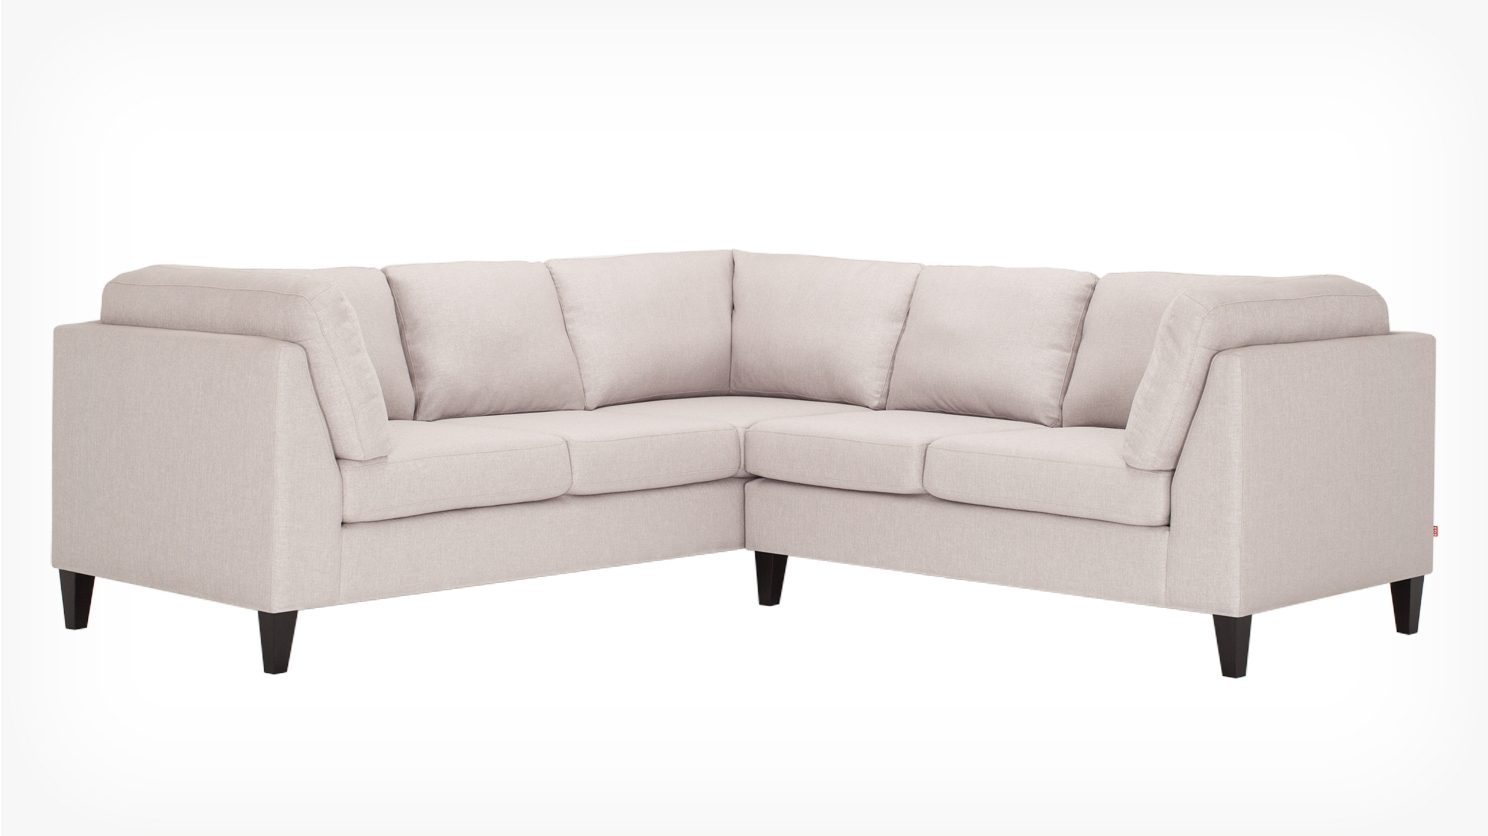 Salema 2 Piece Sectional Sofa Polo Grey Front 02 | Decoration In Eq3 Sectional Sofas (View 9 of 10)